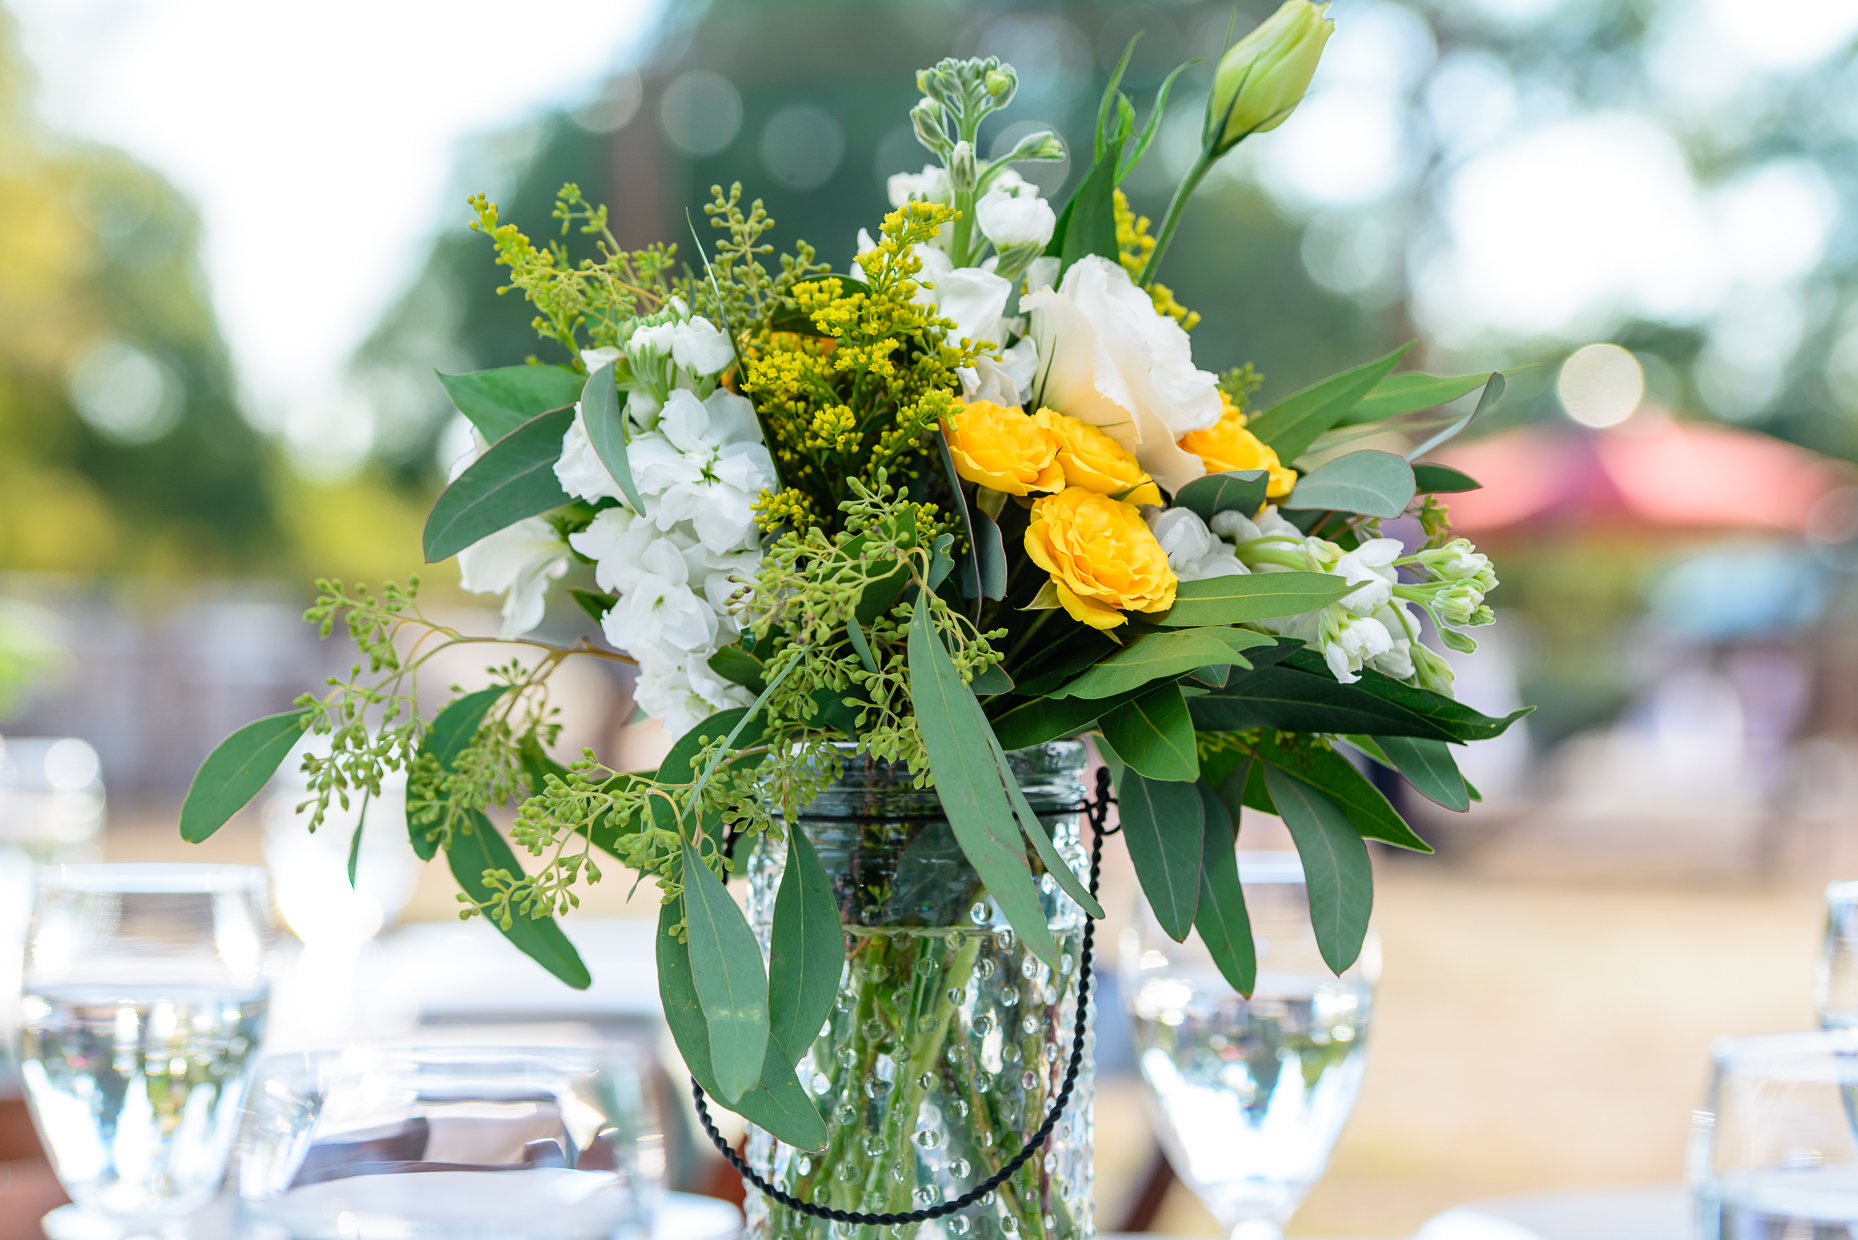 austin-wedding-photographers-flowers-white-yellow-outdoor